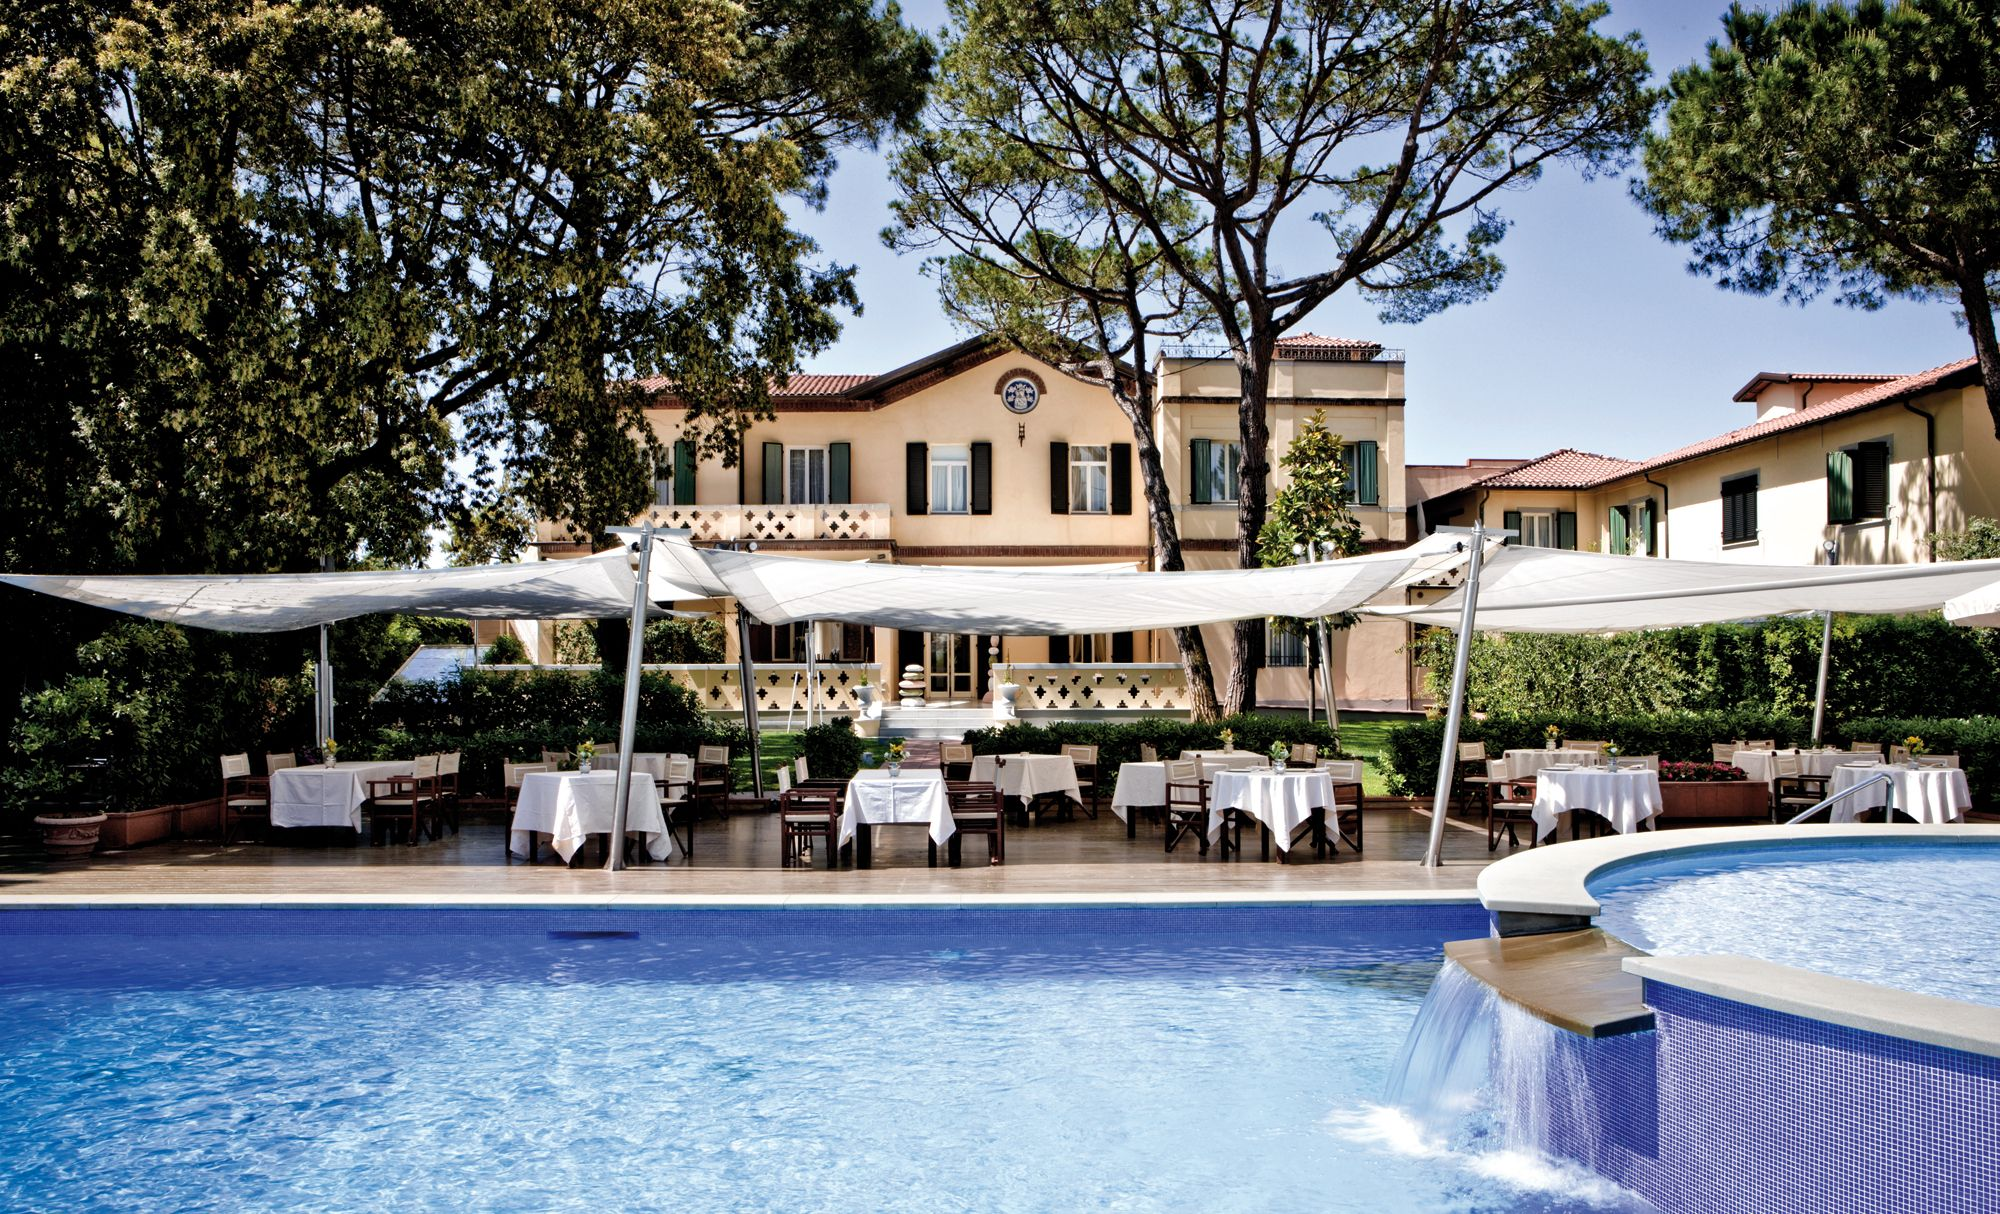 An elegant Tuscan seaside villa overlooking the sea, Hotel Byron in Forte dei Marmi, Italy sits right on the seaside promenade. All the beautifully decorated rooms have a wonderful view of the sea or the Apuan Alps – the perfect place to unwind… http://www.slh.com/hotels/hotel-byron/